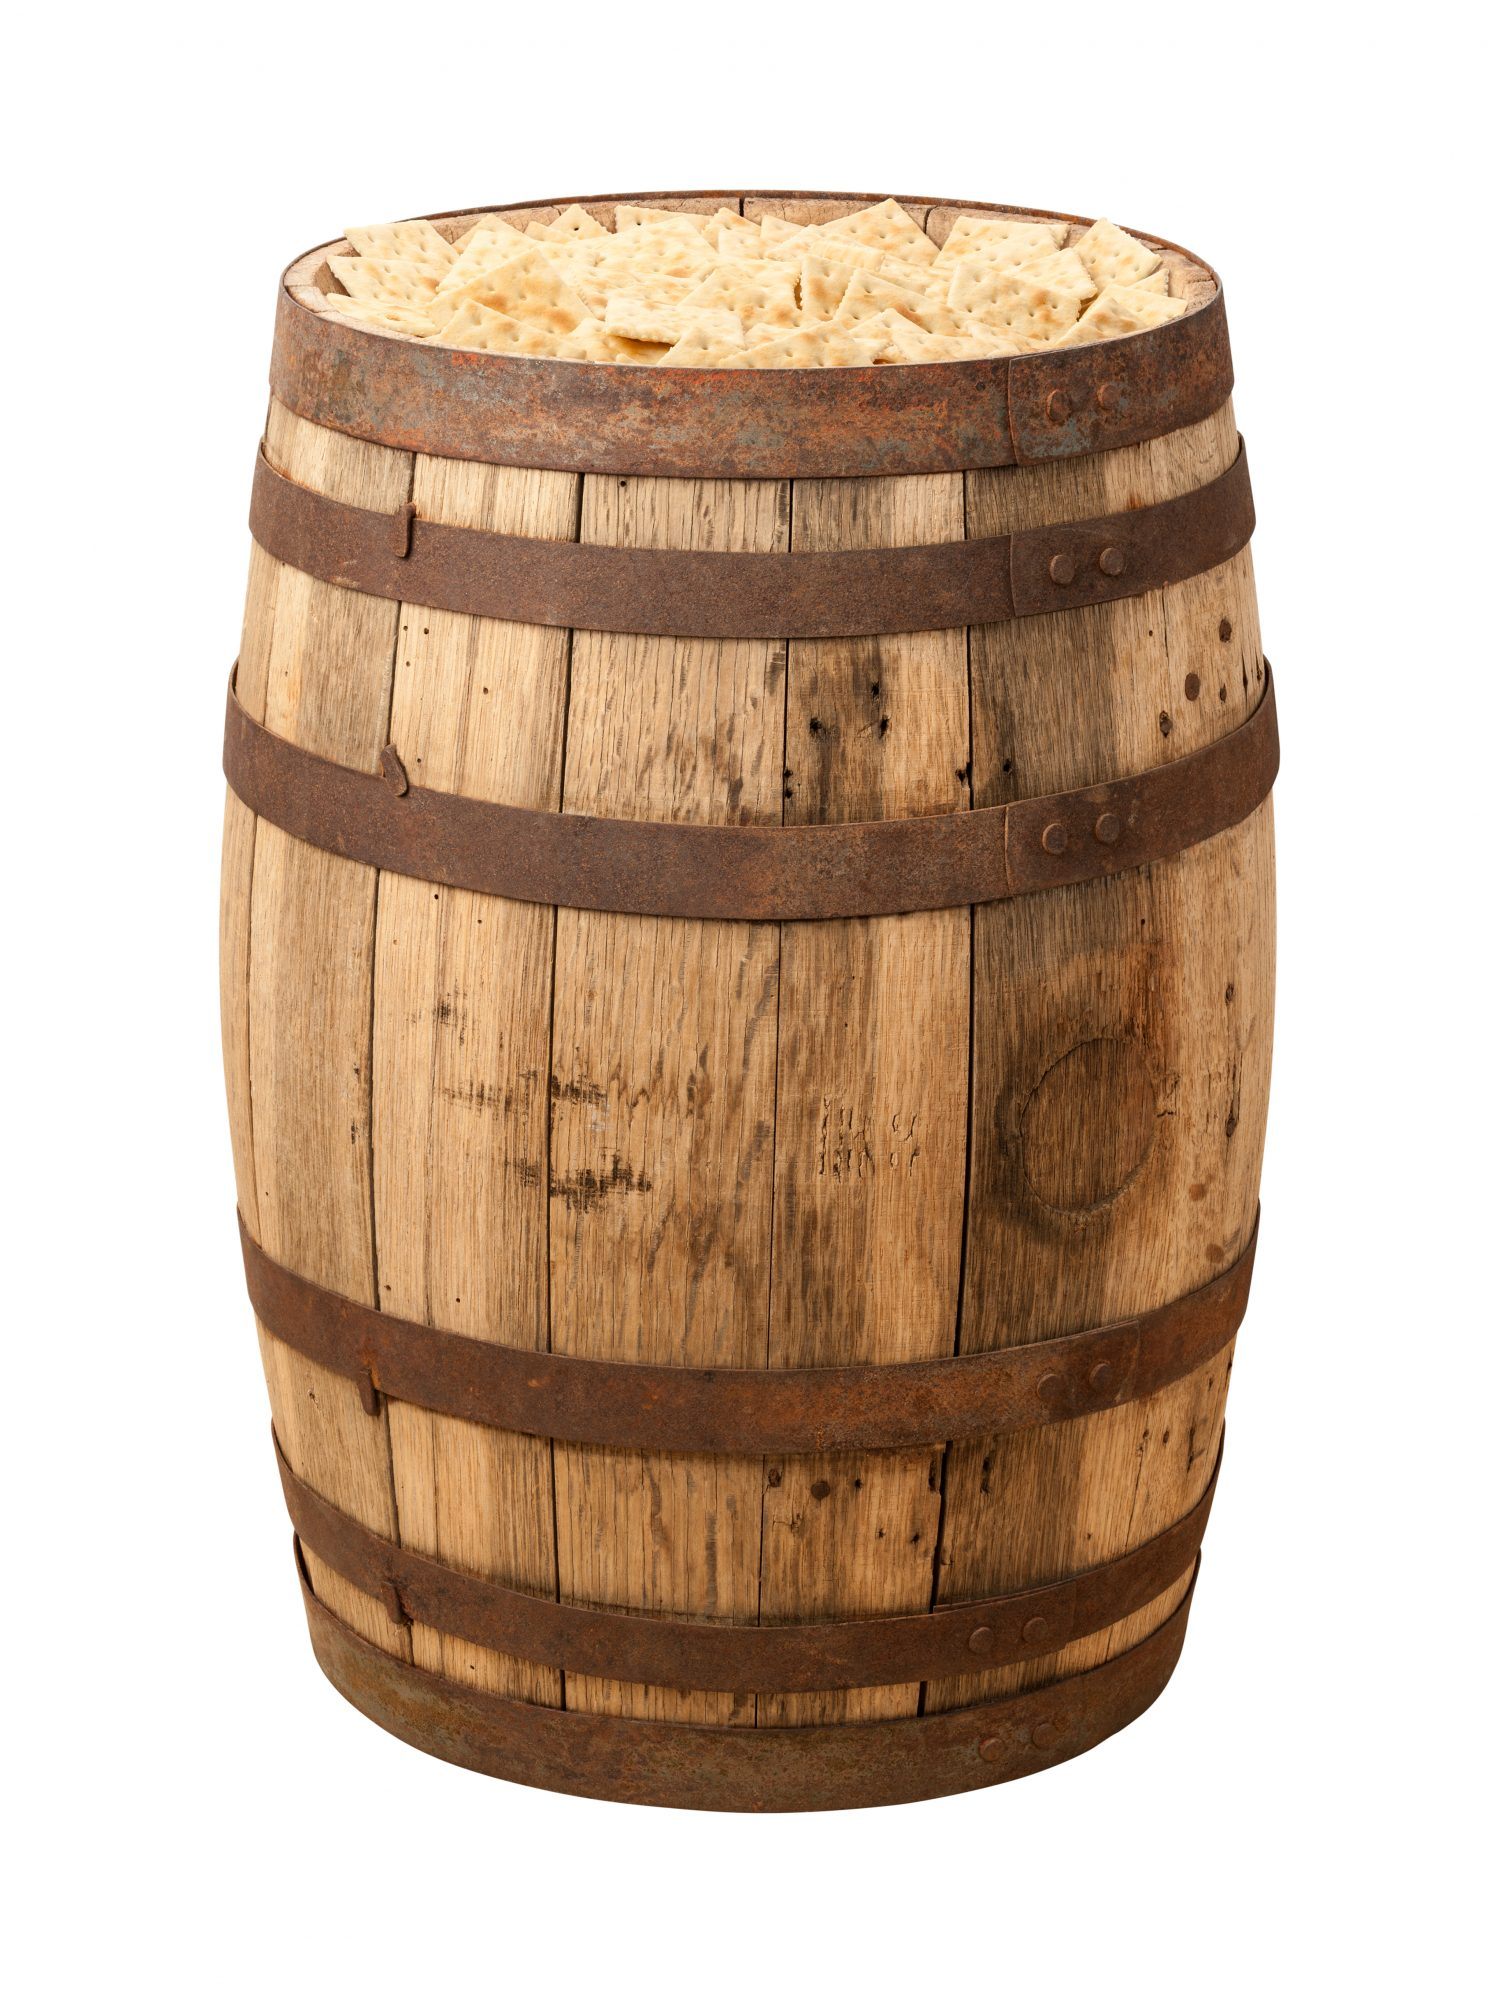 Barrel of Crackers